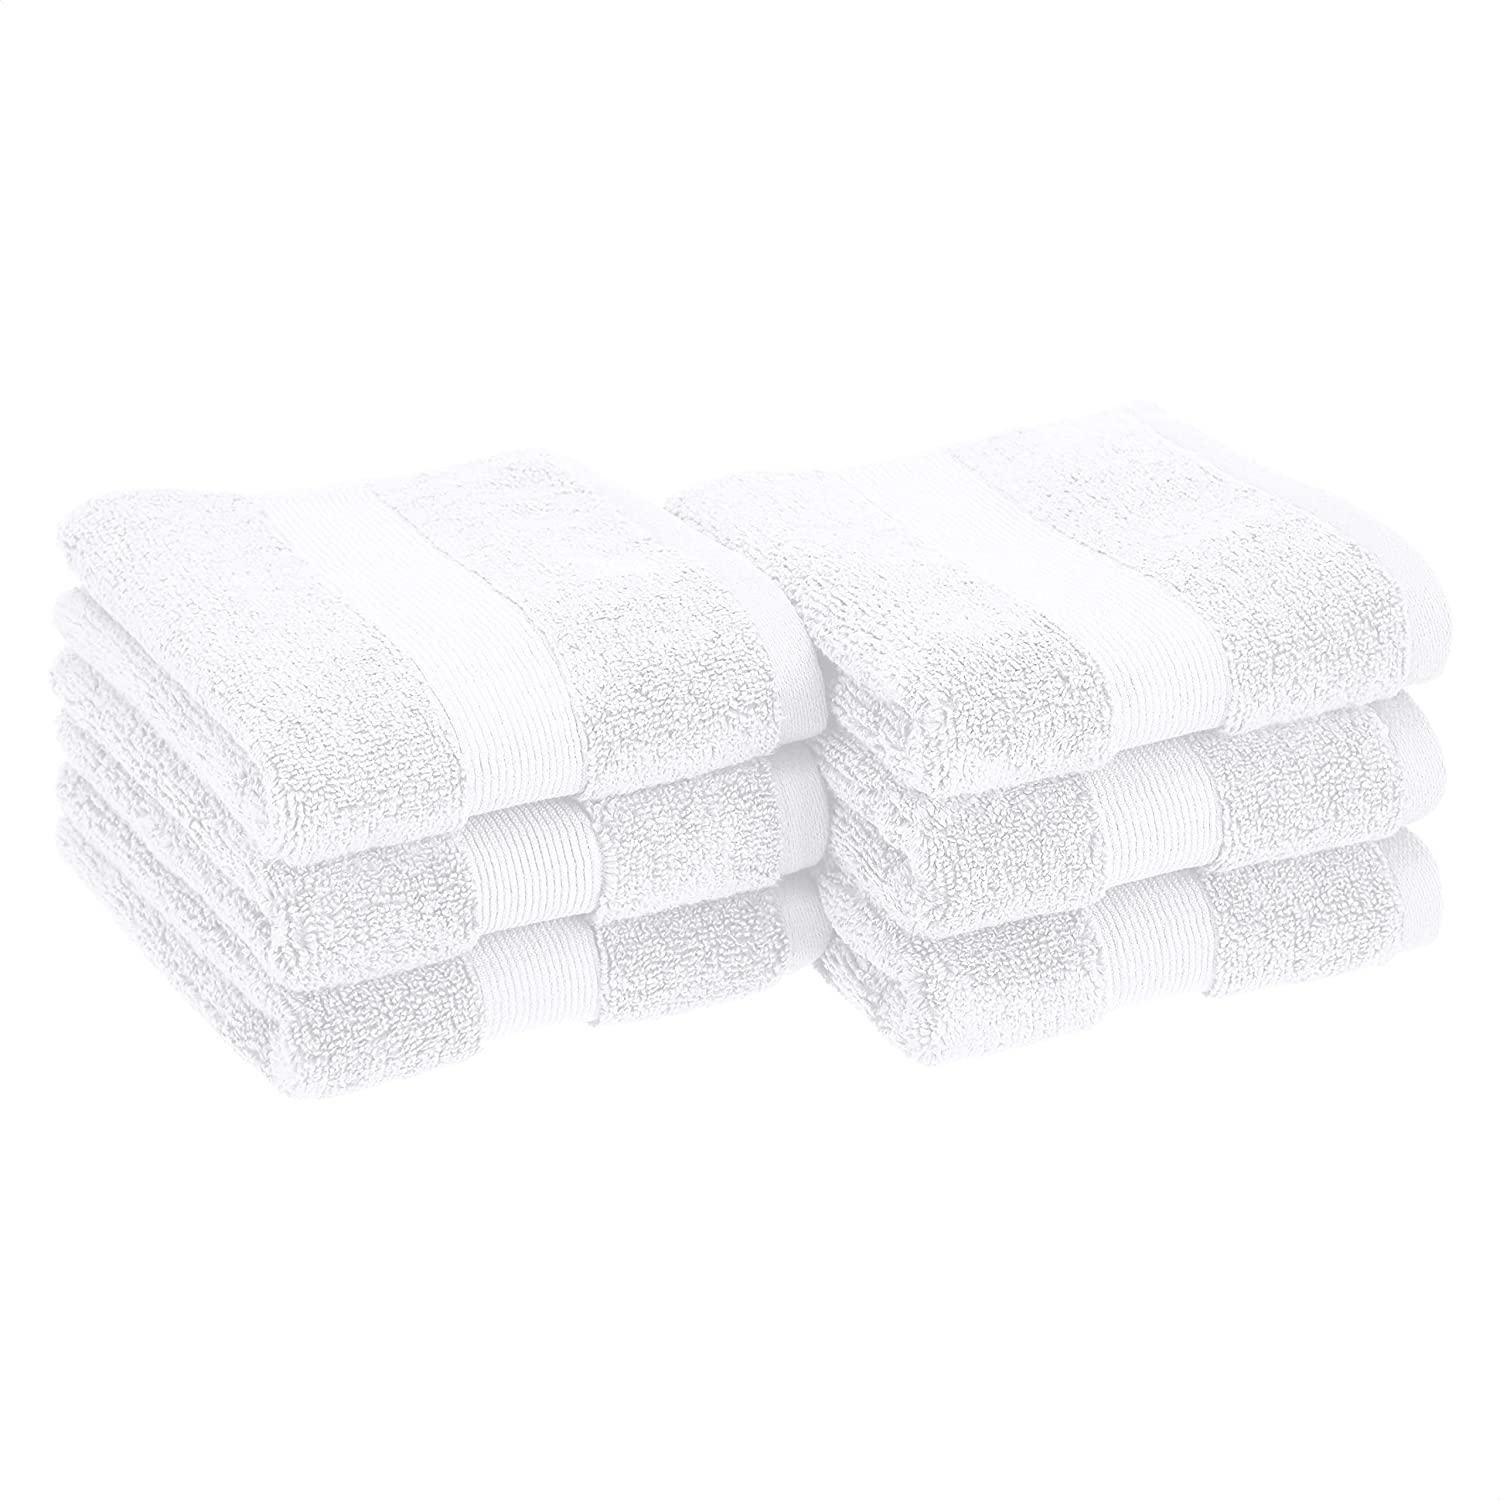 AmazonBasics Dual Performance Hand Towel - 6-Pack, Scenic Snow